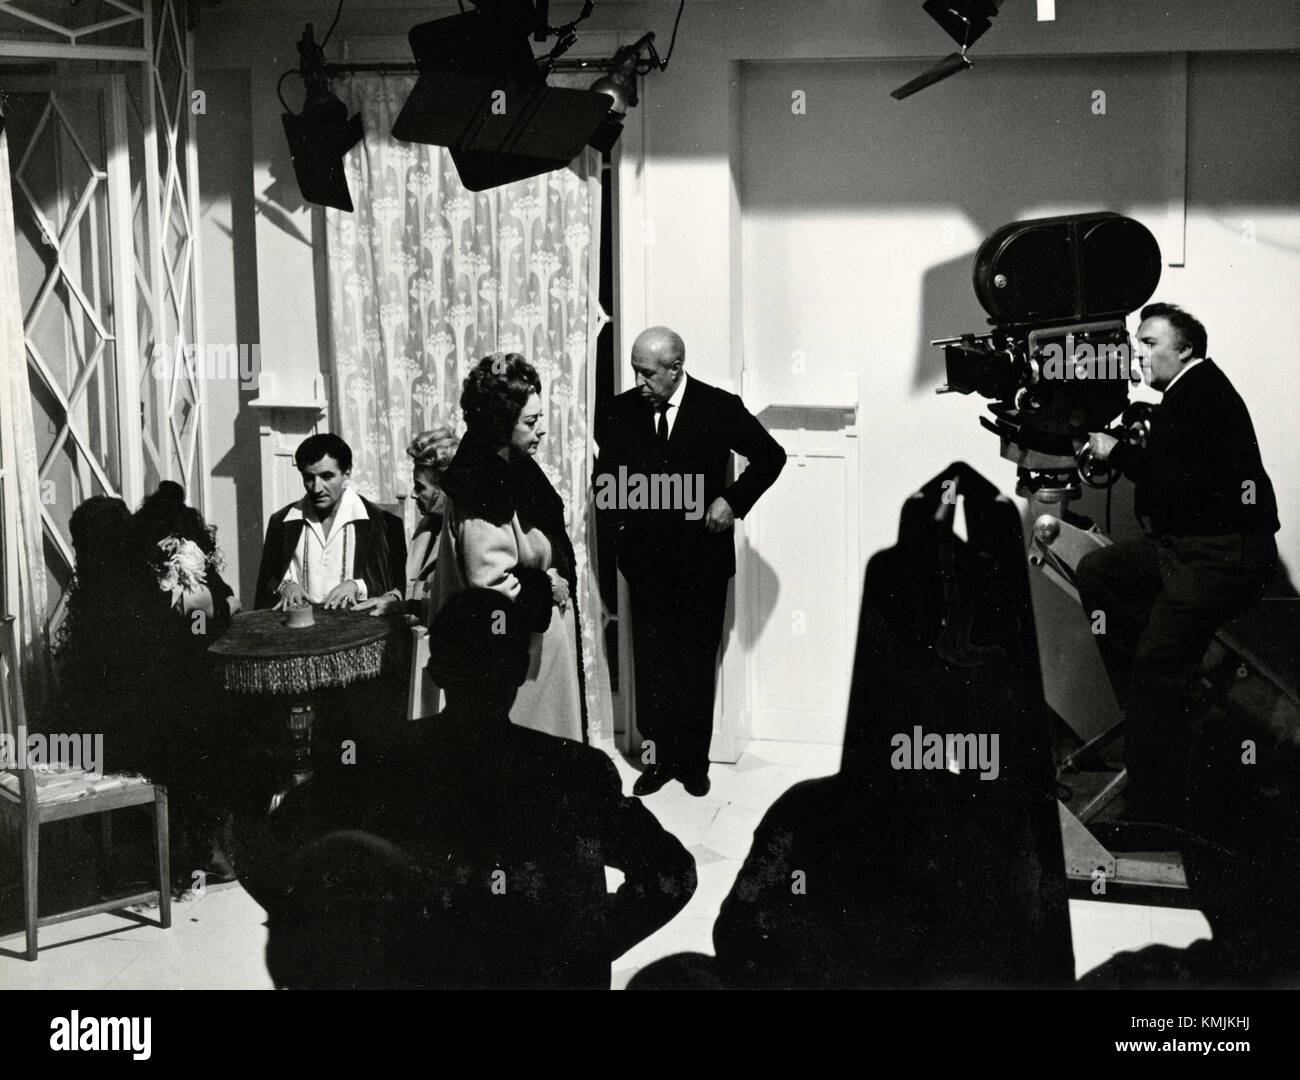 Italian movie-maker Federico Fellini filming Juliet of the Spirits, Italy 1965 - Stock Image